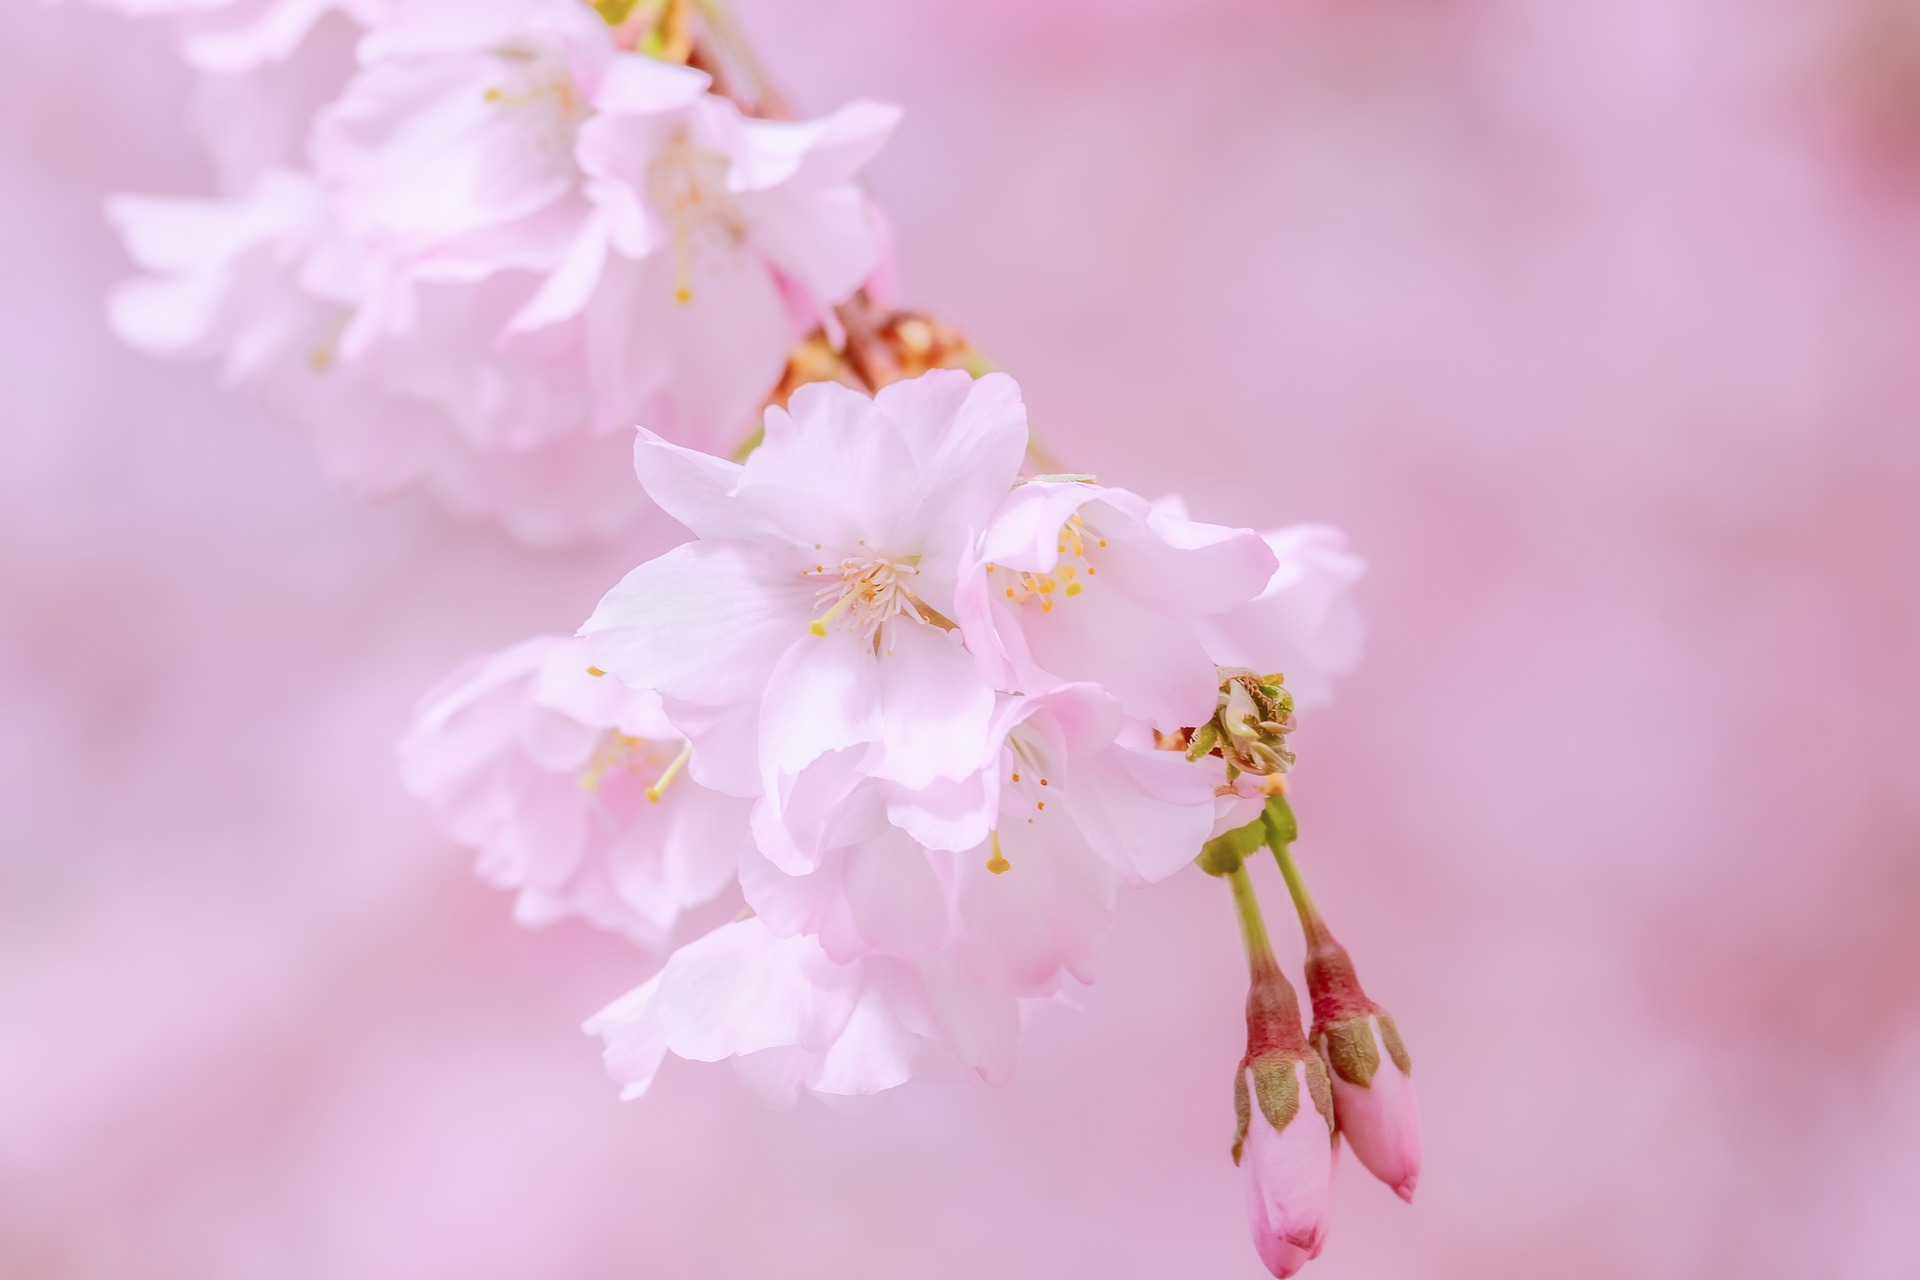 japanese-cherry-trees-4050978_1920.jpg